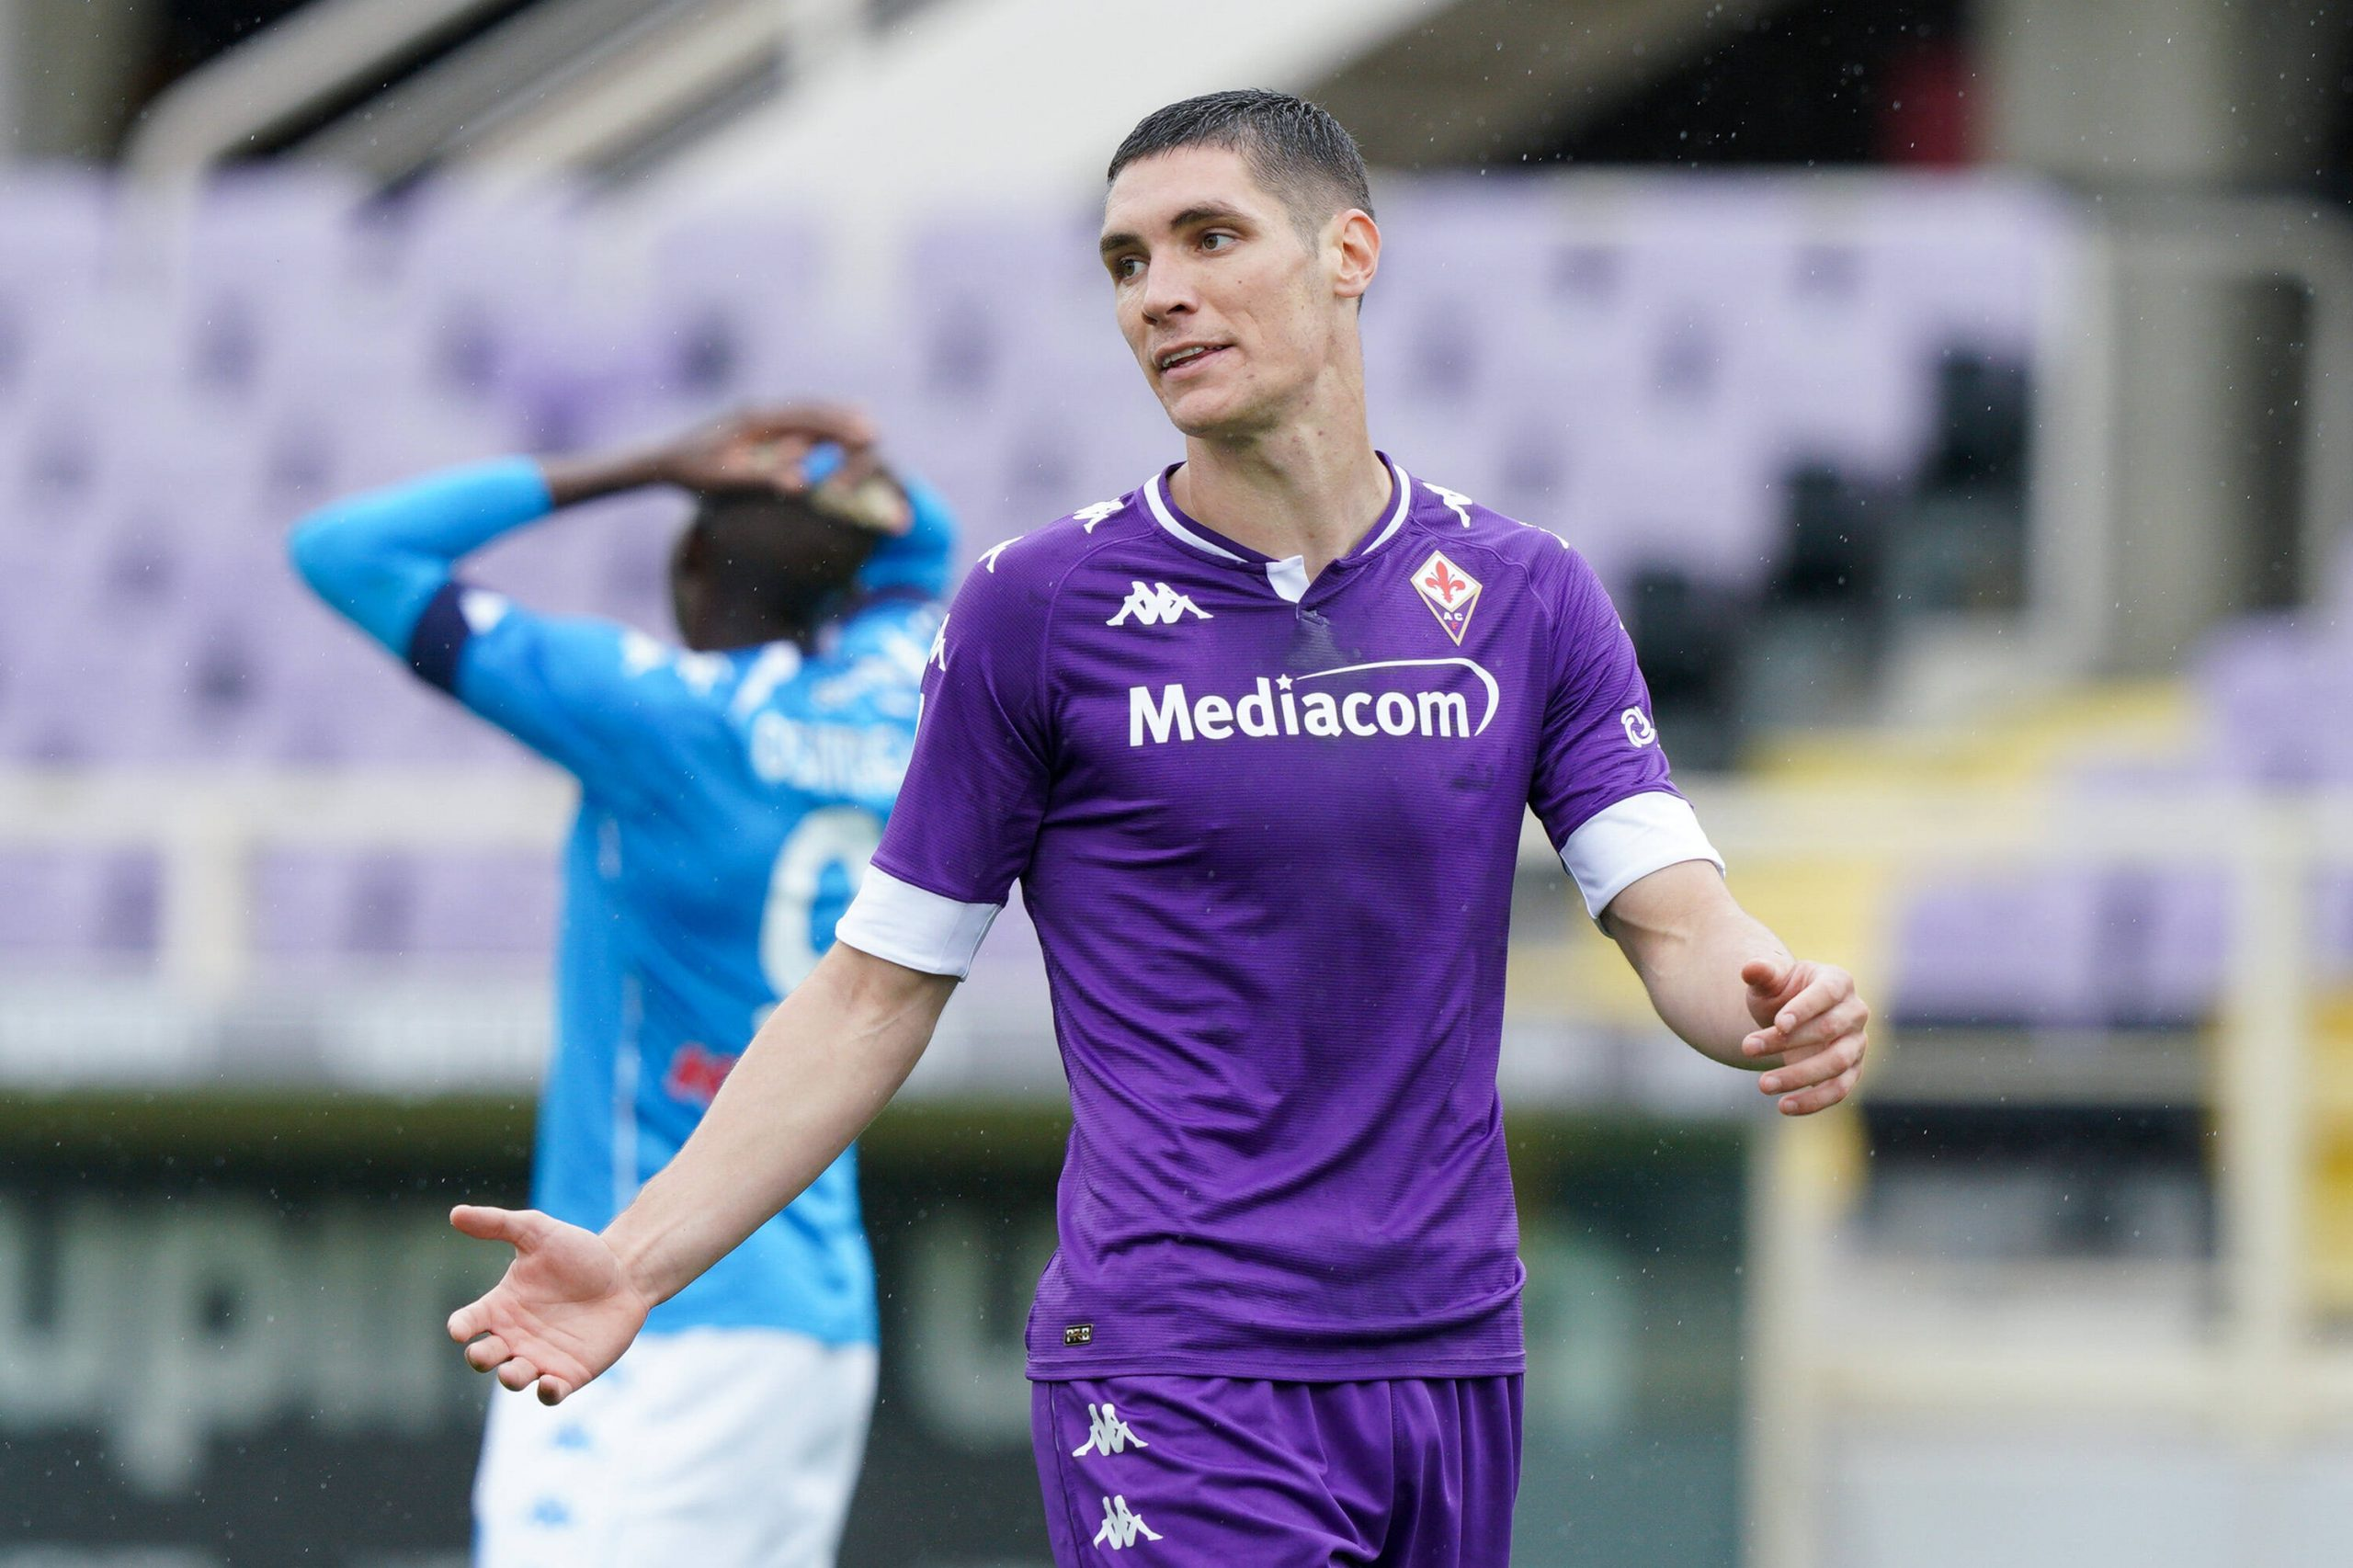 Milenkovic is in the final year of his contract with Fiorentina